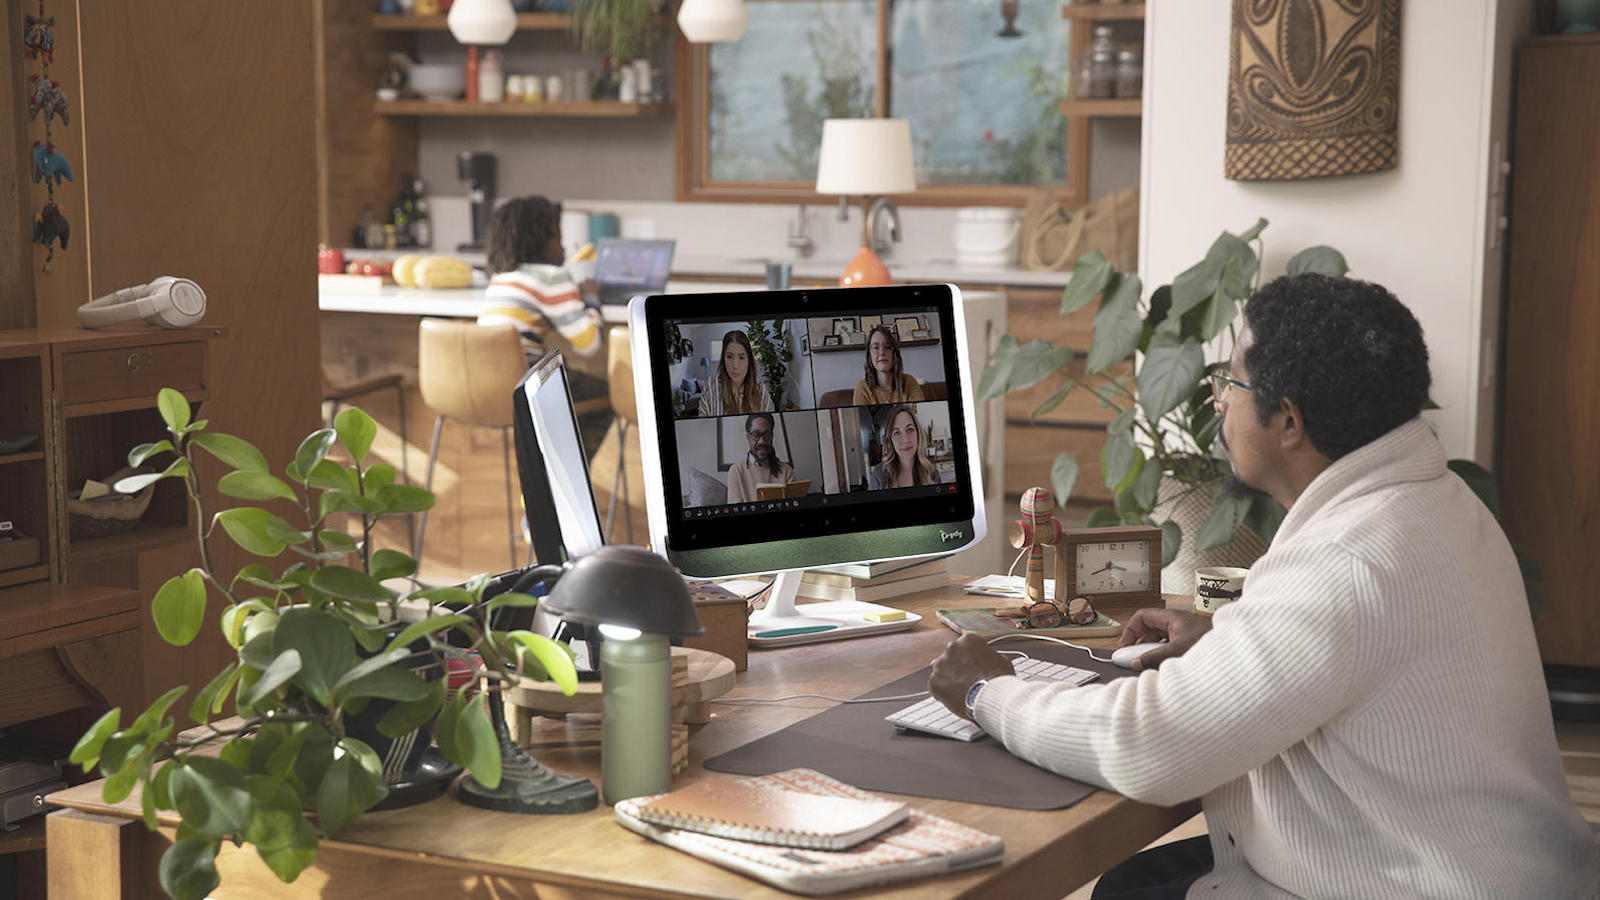 Poly Studio 21 personal meeting monitor includes all the features for video conferencing